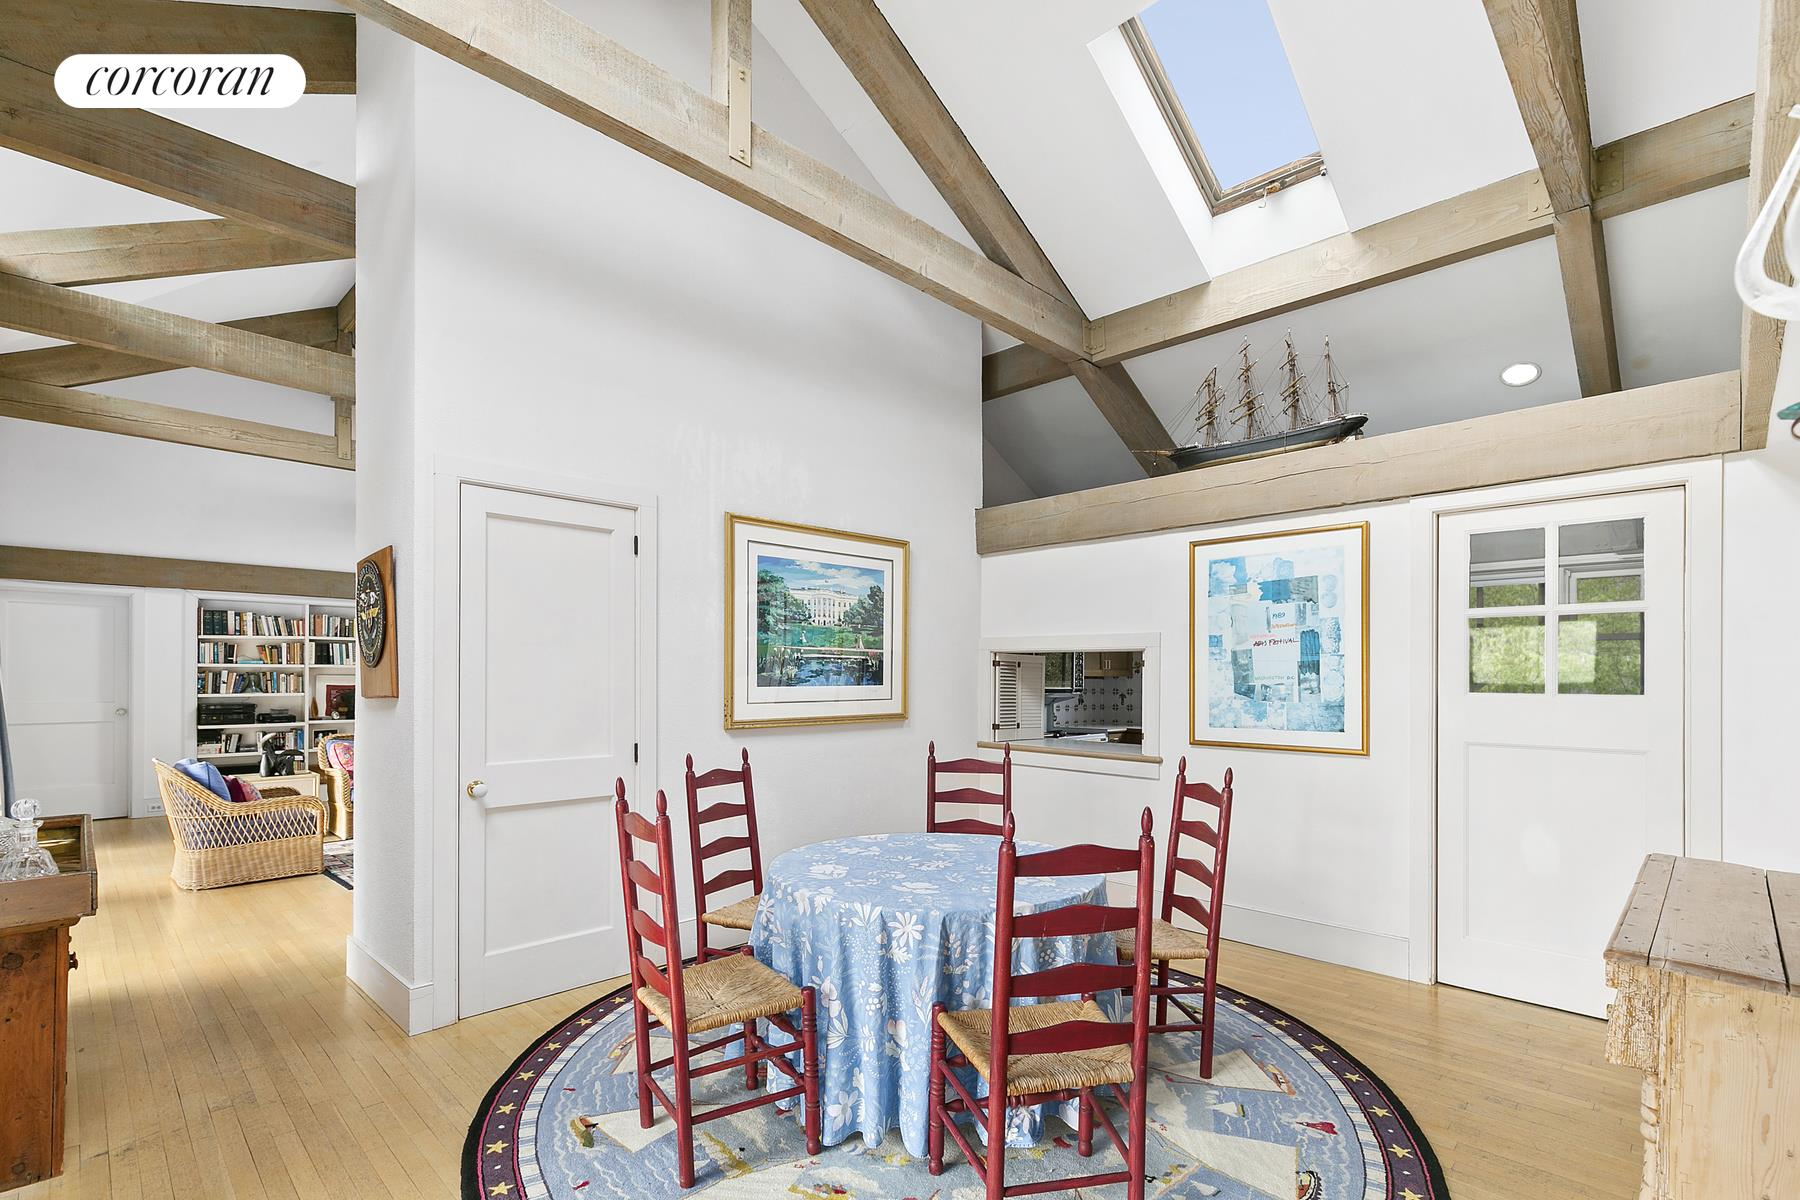 351 Sagaponack Road, Select a Category